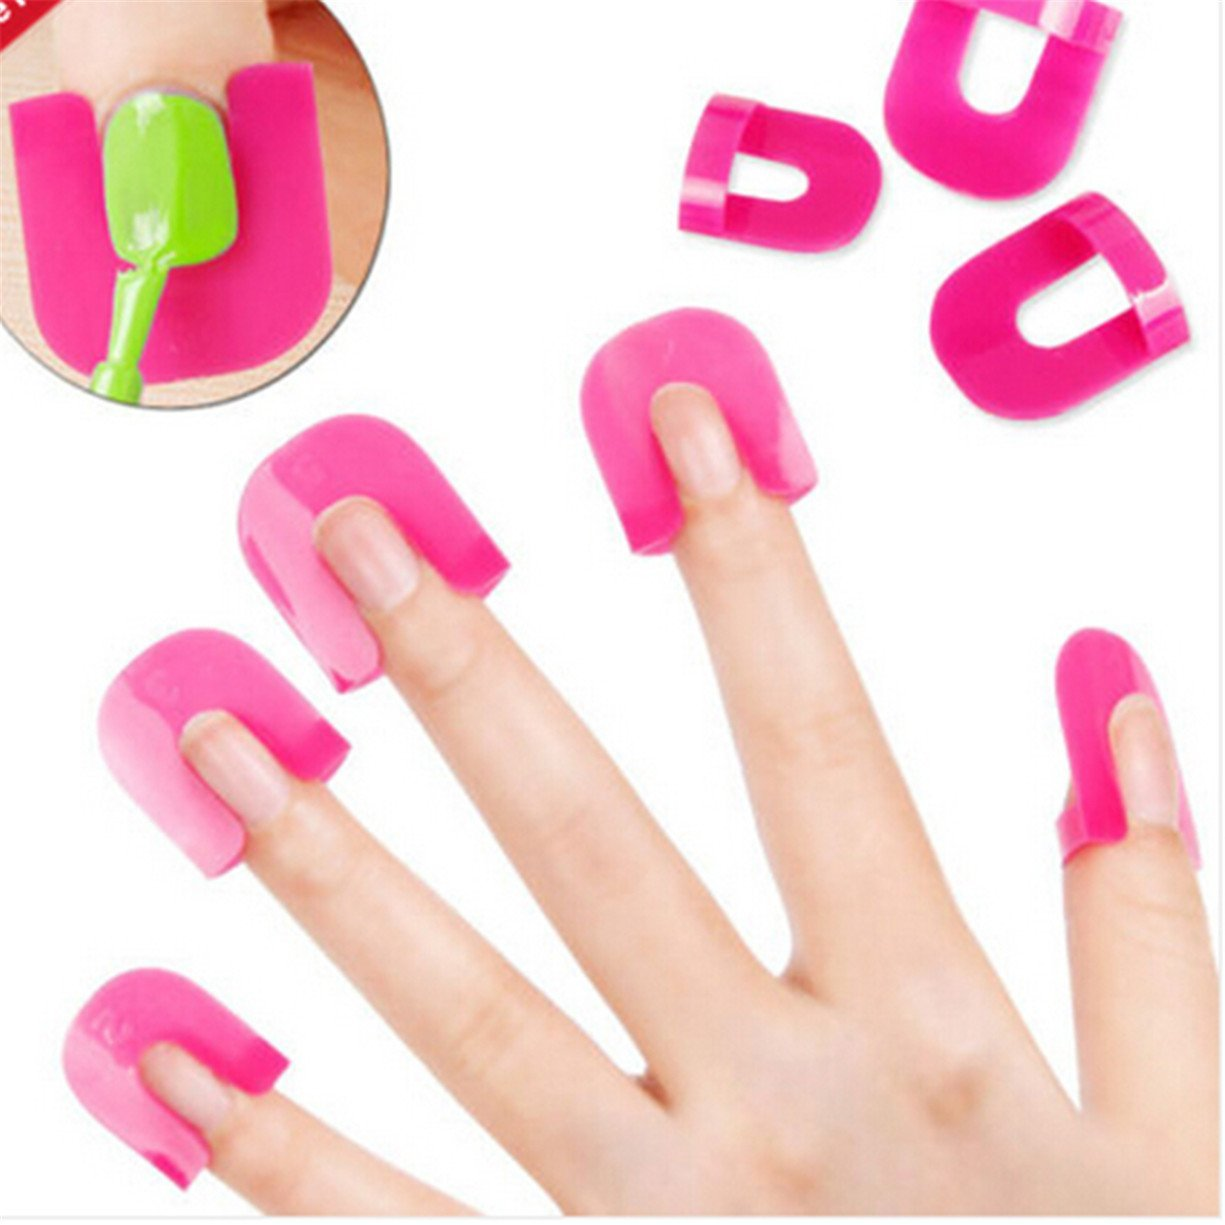 Amazon.com: YSL 26pcs Reusable Nails Edge Skin Barrier Nail Polish Stencils  Kit Manicure Nail Art Polish Protection Tip Protectors: Home U0026 Kitchen